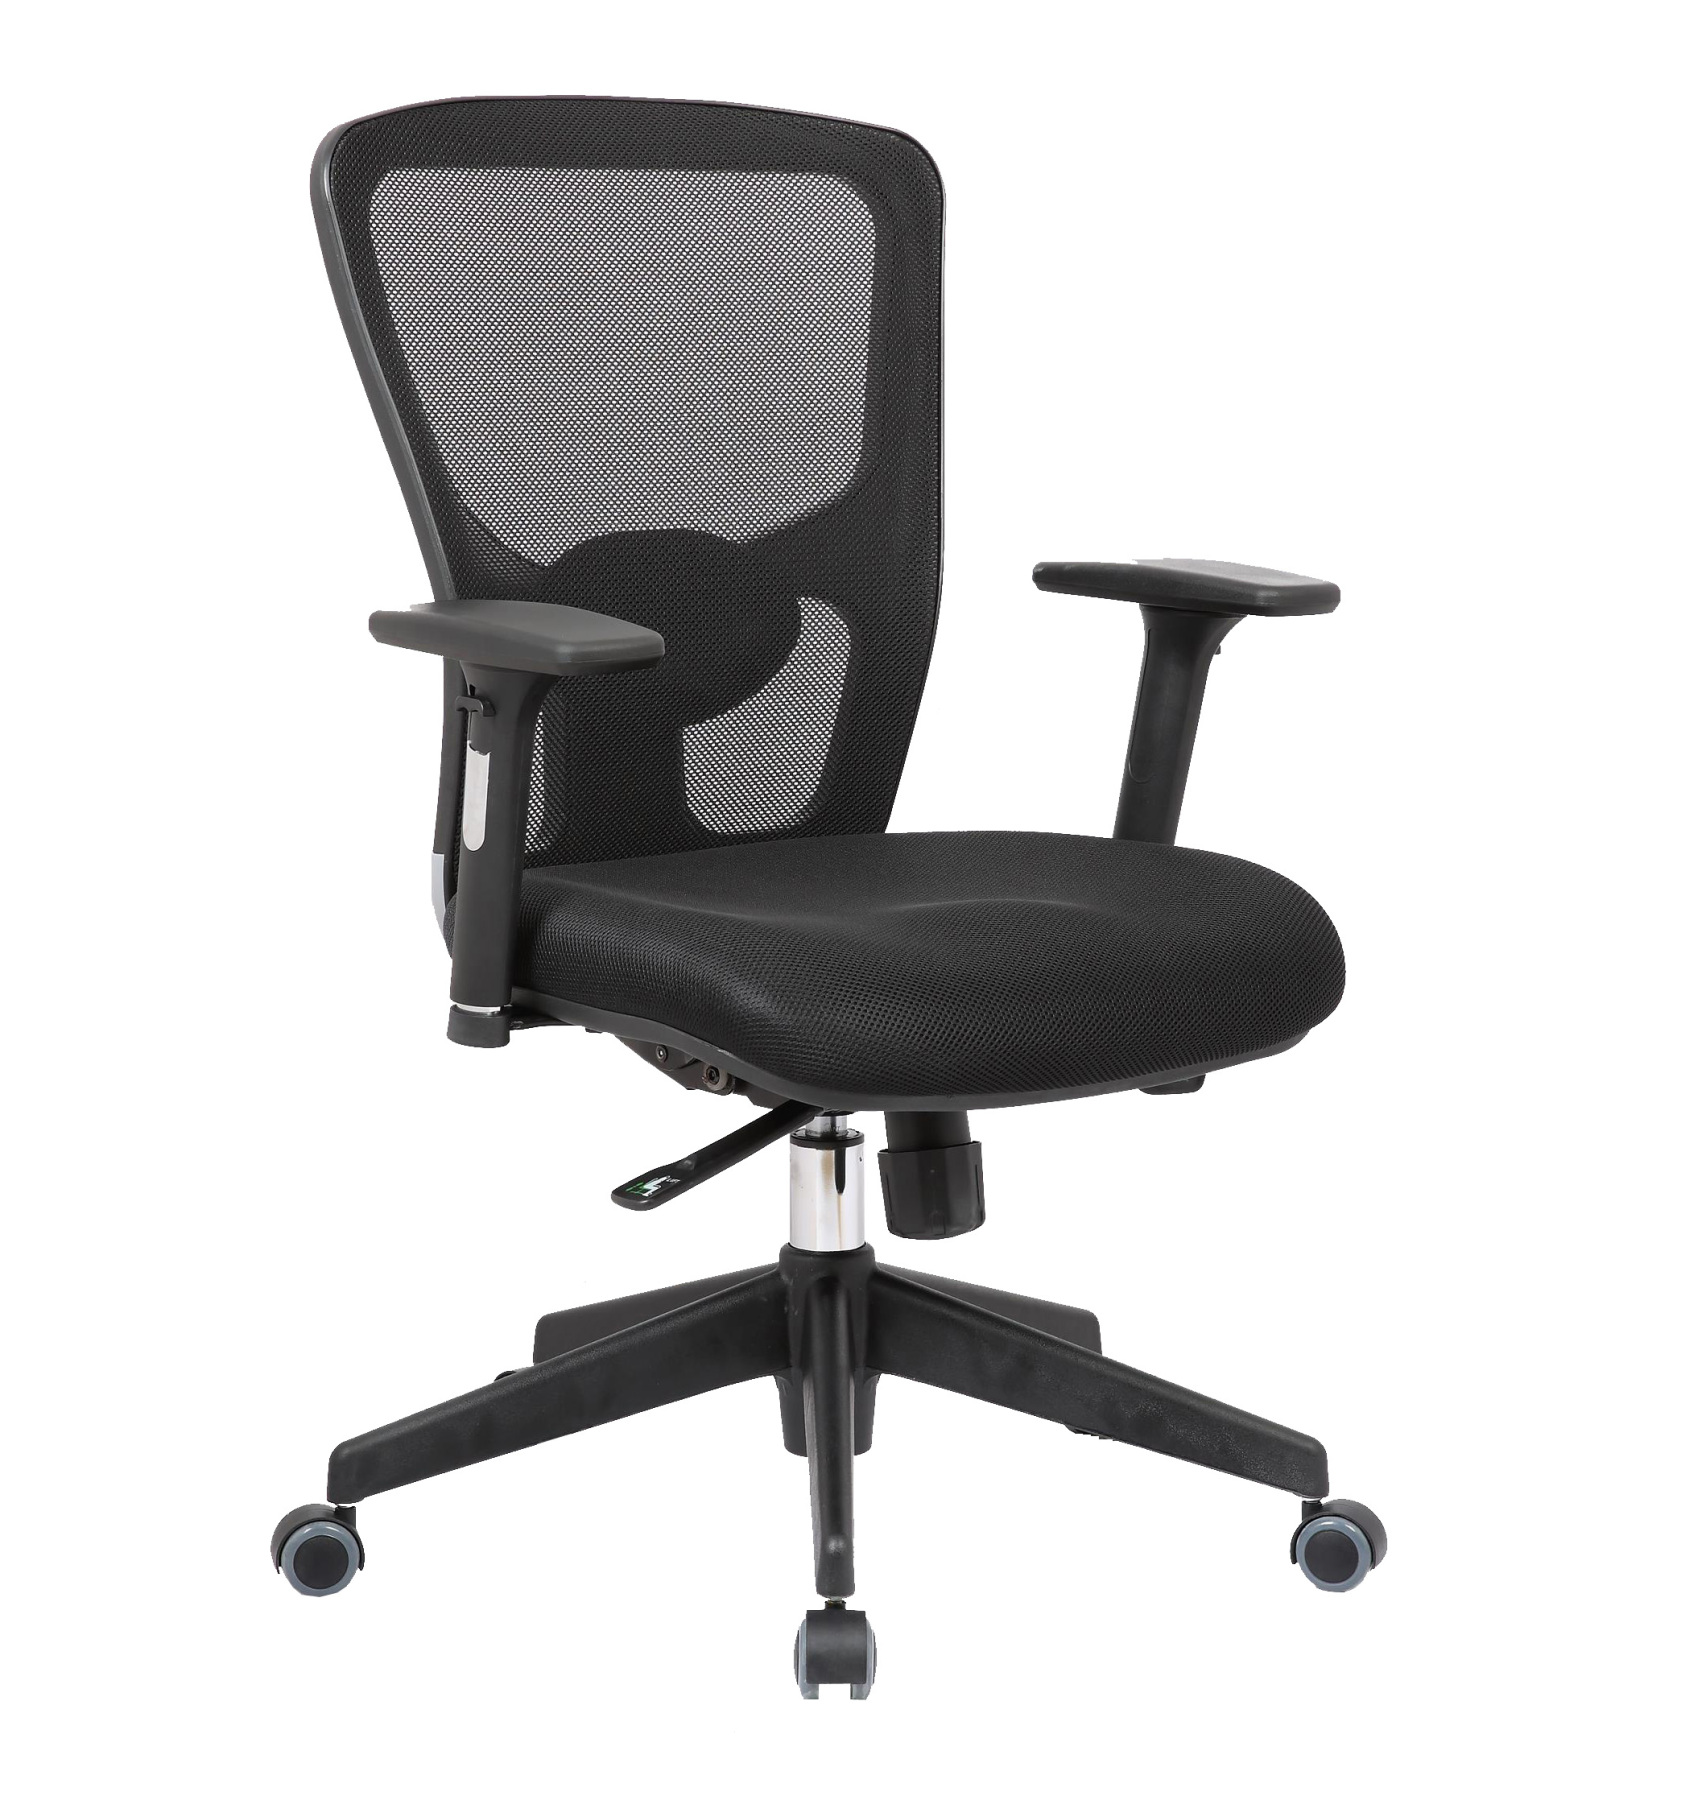 Chair's Office Desk Ergonomic With House Mechanism Sincro, Arms Adjustable And Tra Adjustable-respaldo De Mesh Lumbar Support